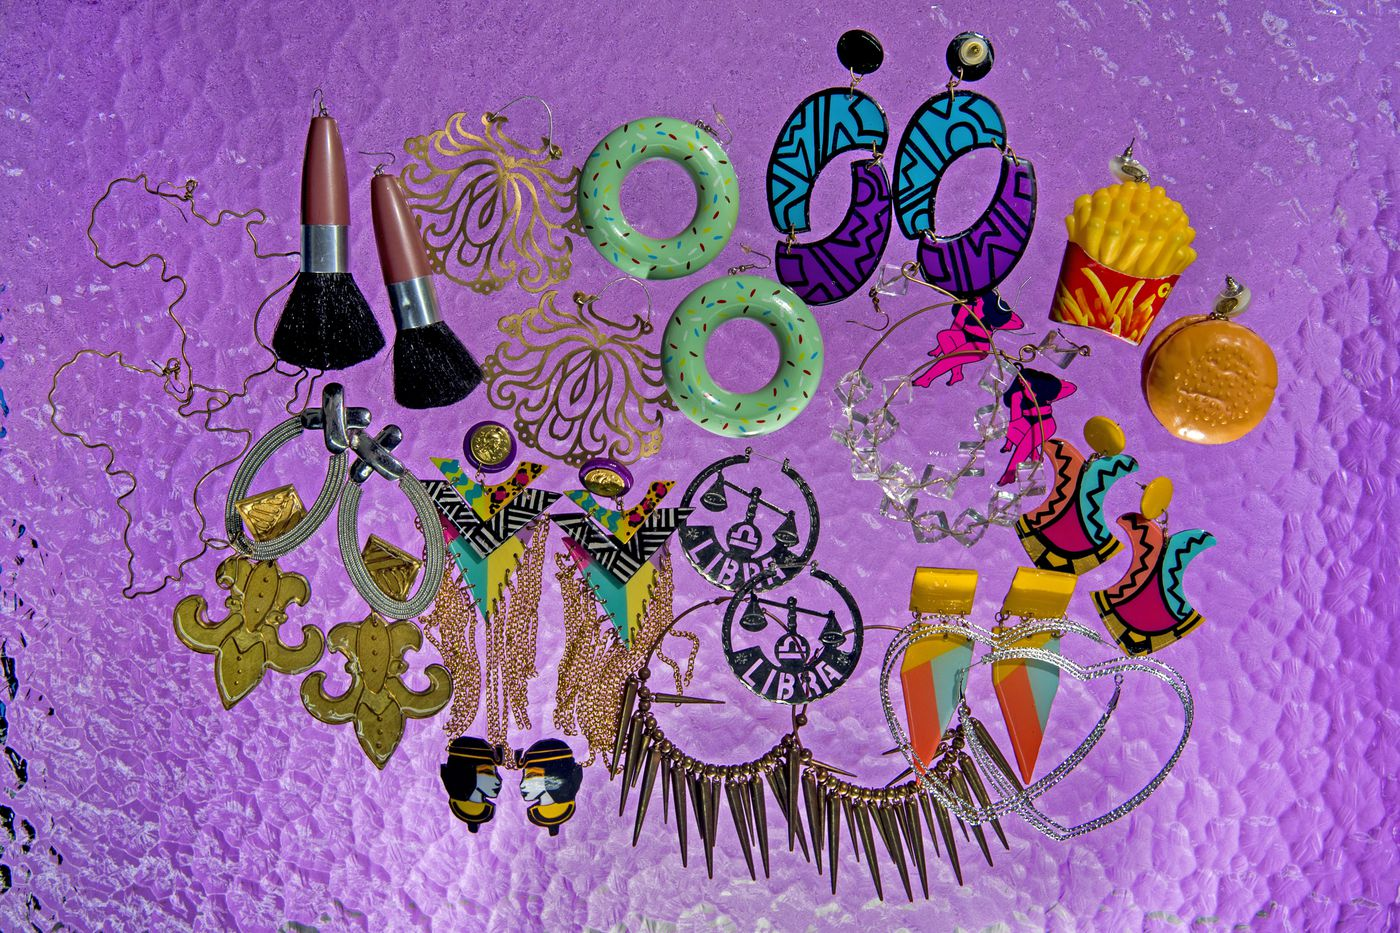 Dreams of being a fly girl: How my size shaped my earring collection